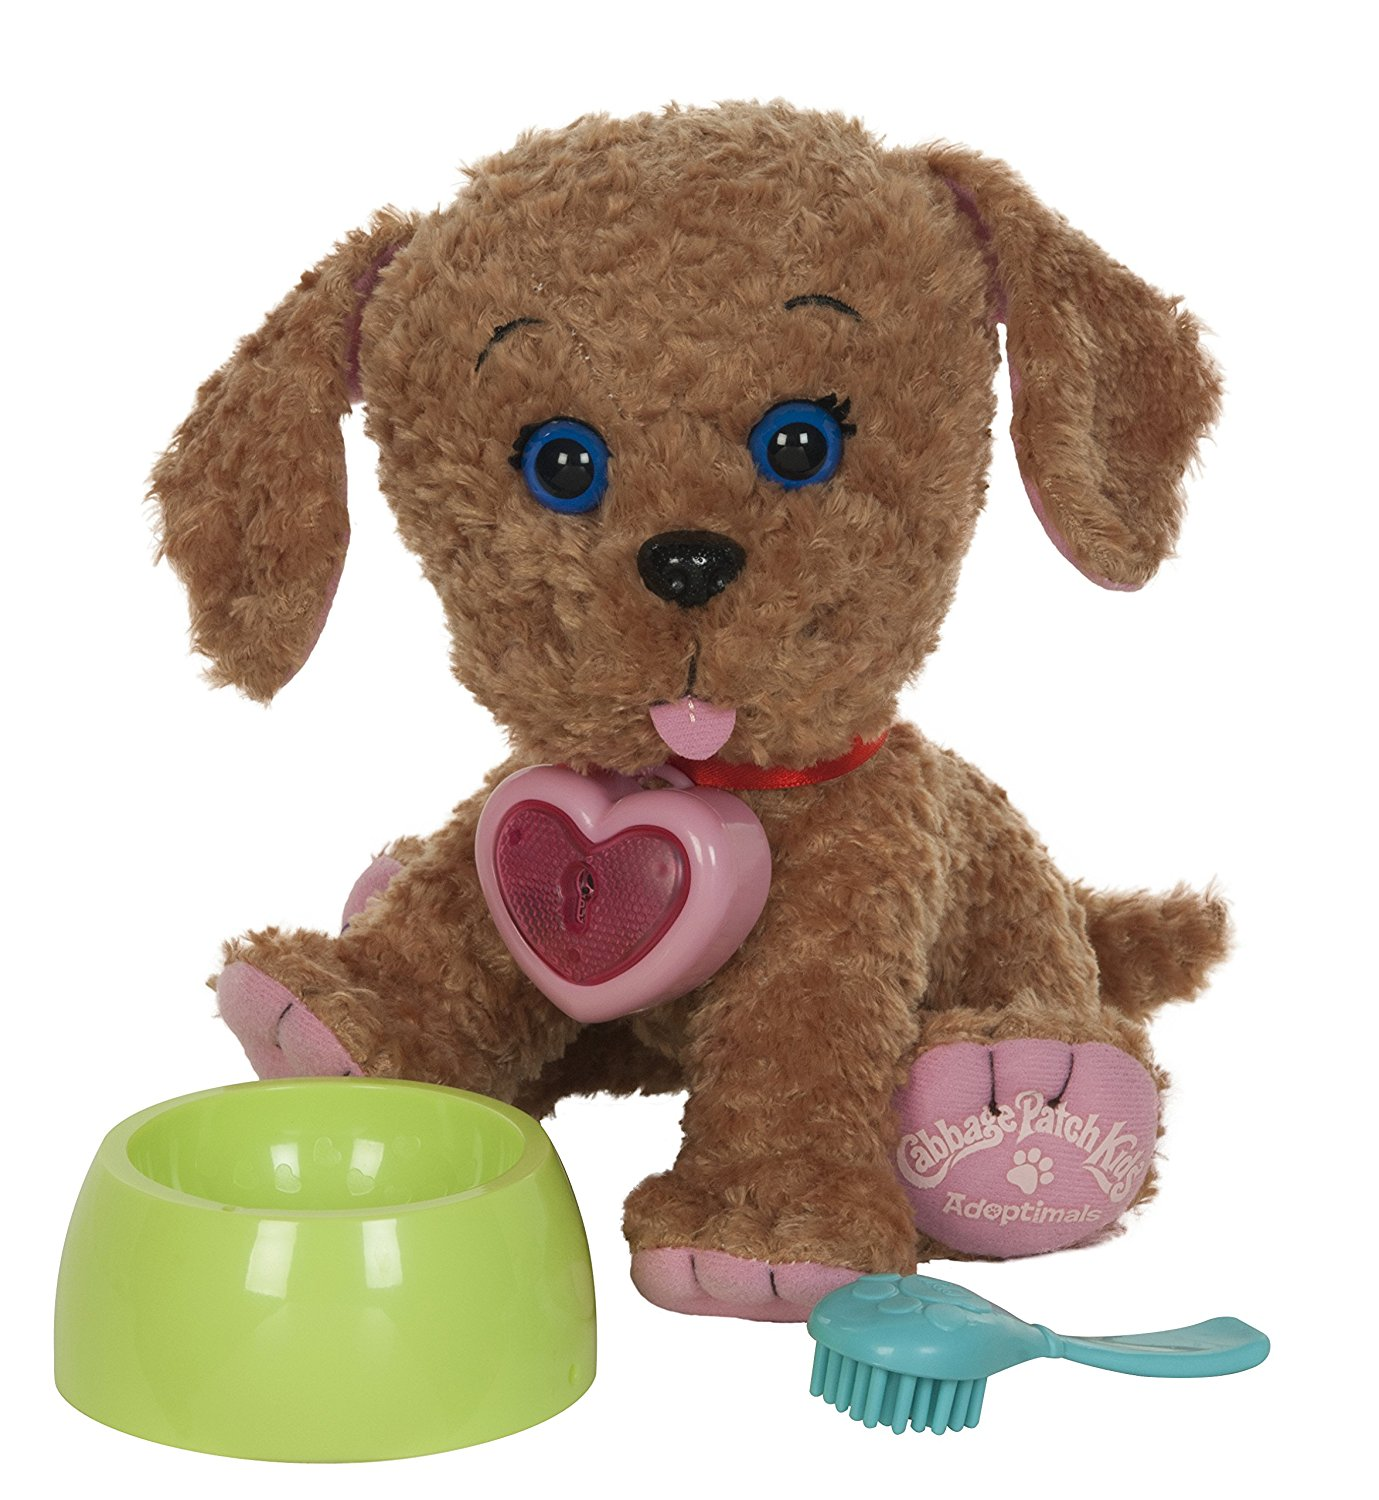 Adoptimals LabradoodleBowl and brush included to care for your Labradoodle! By Cabbage Patch Kids by